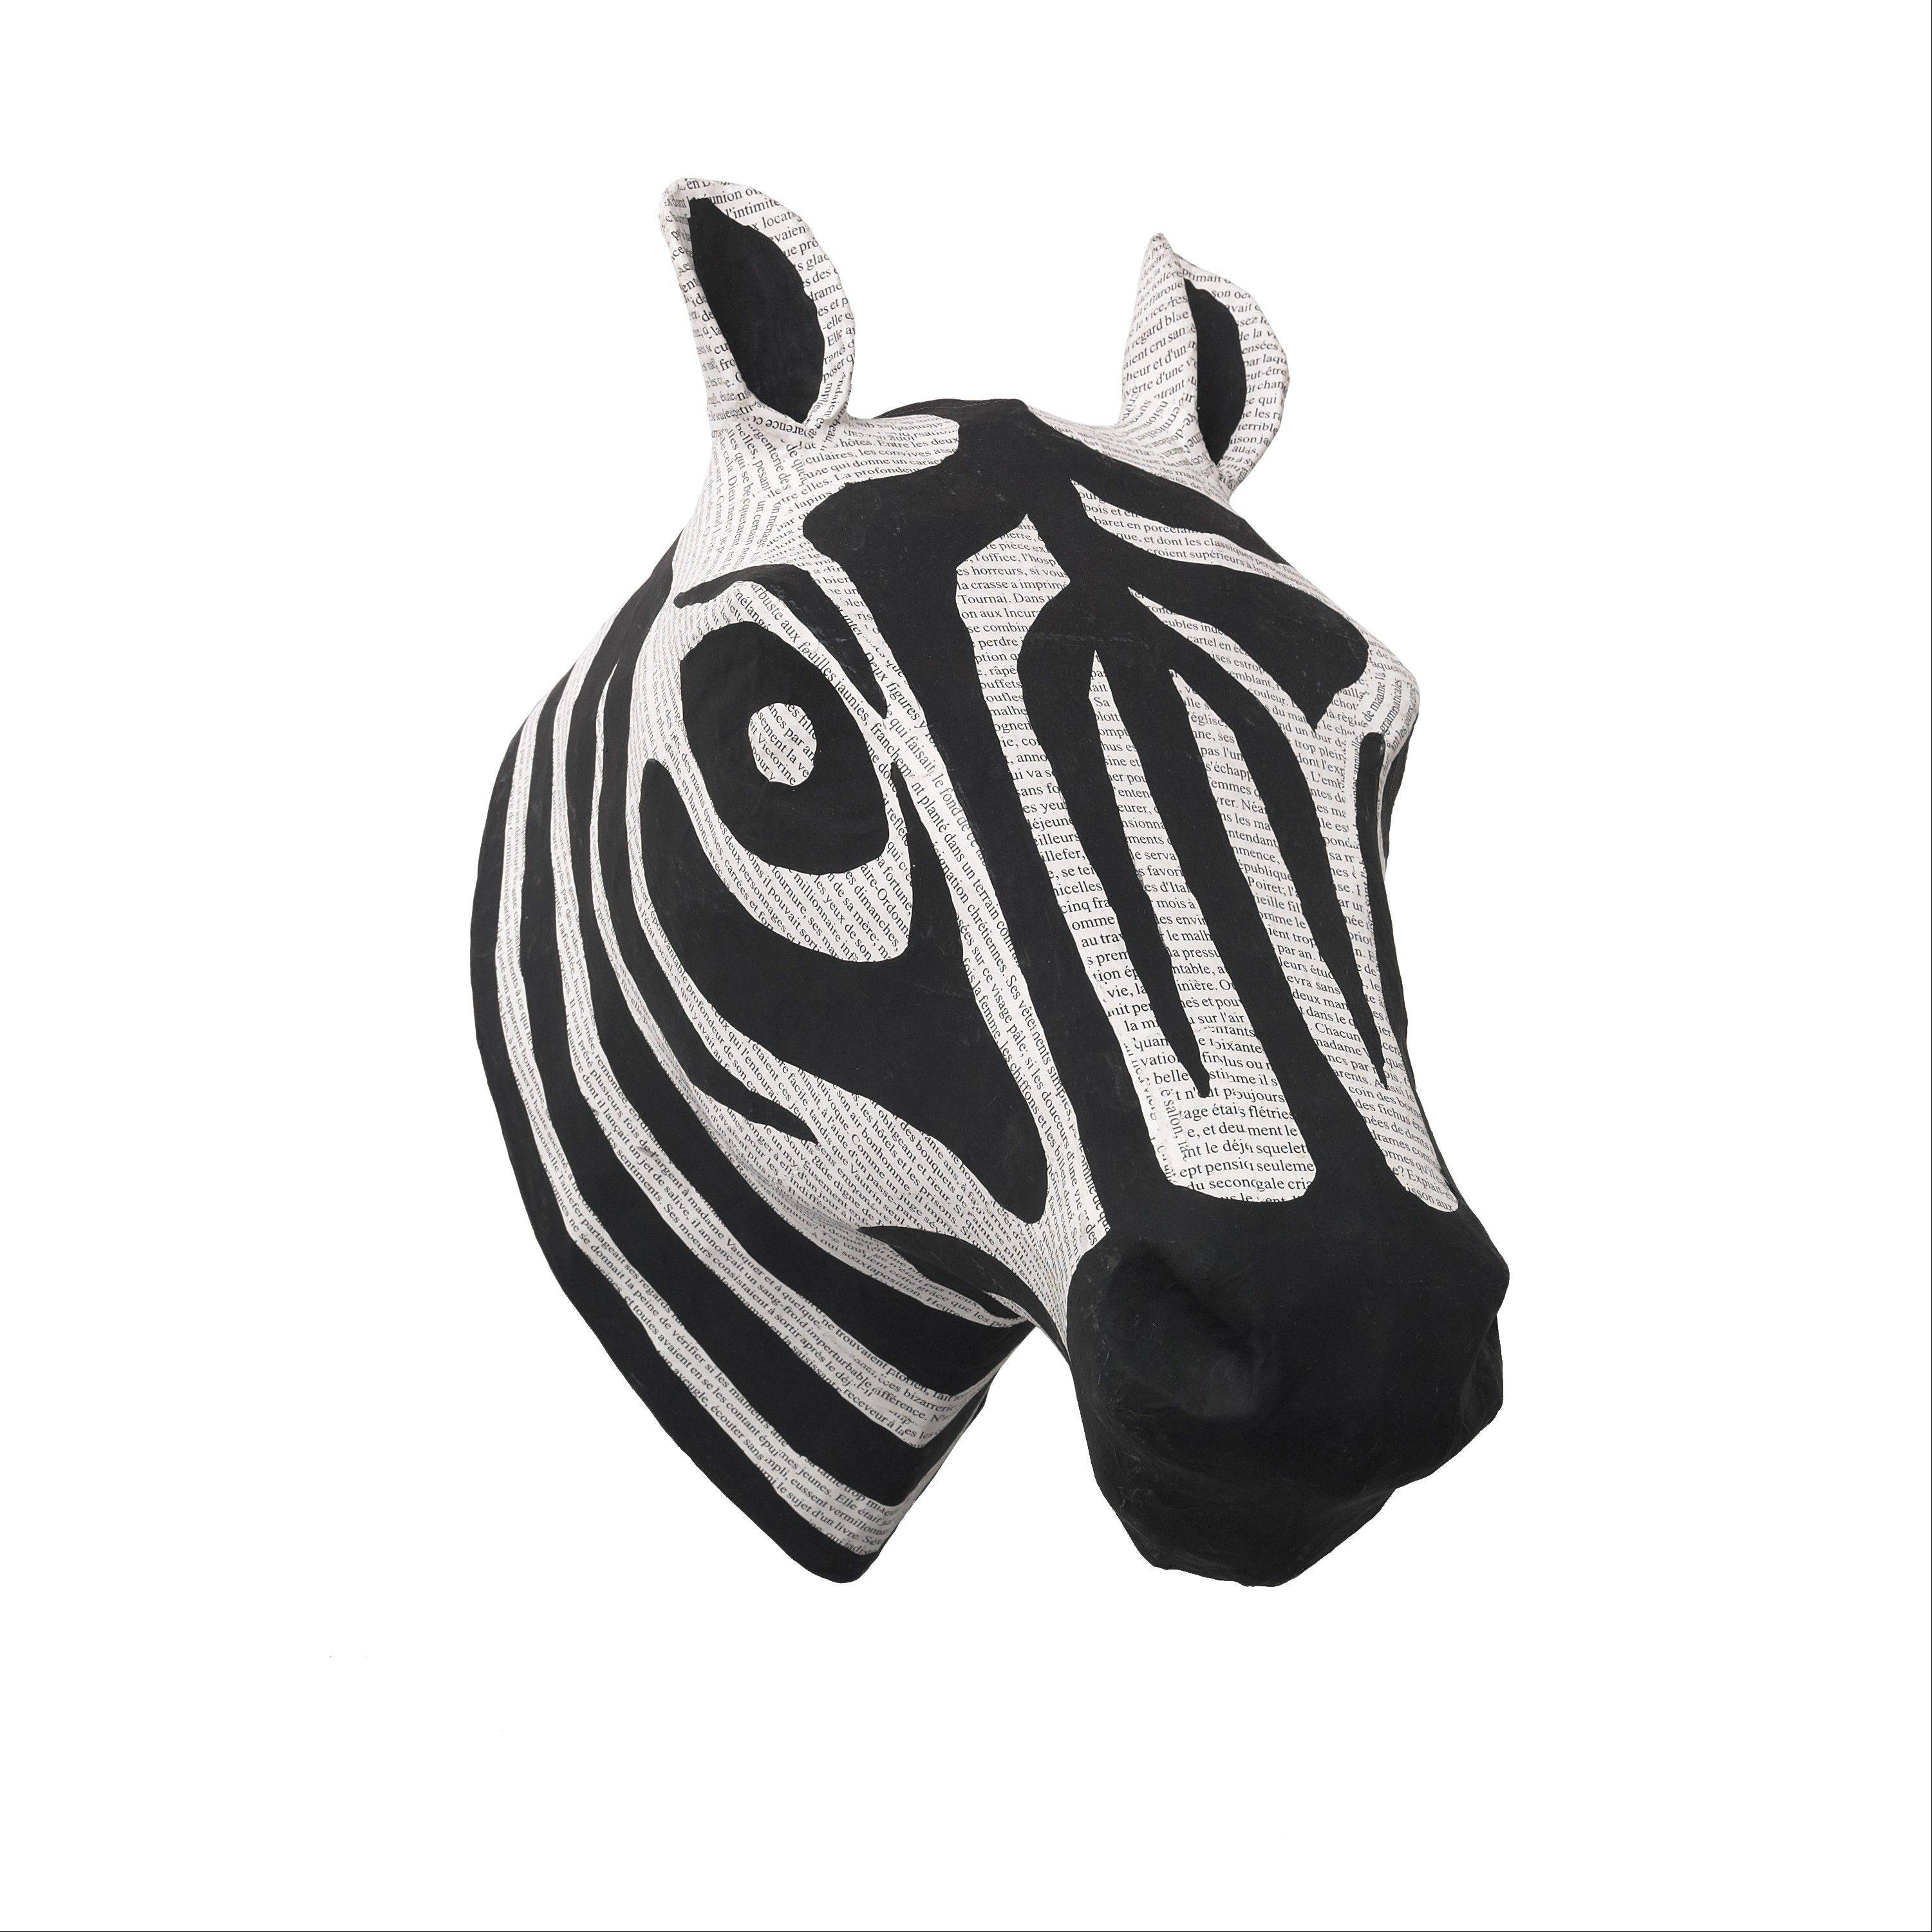 A papier mache zebra head, in black and white, freom Dwell Studio.